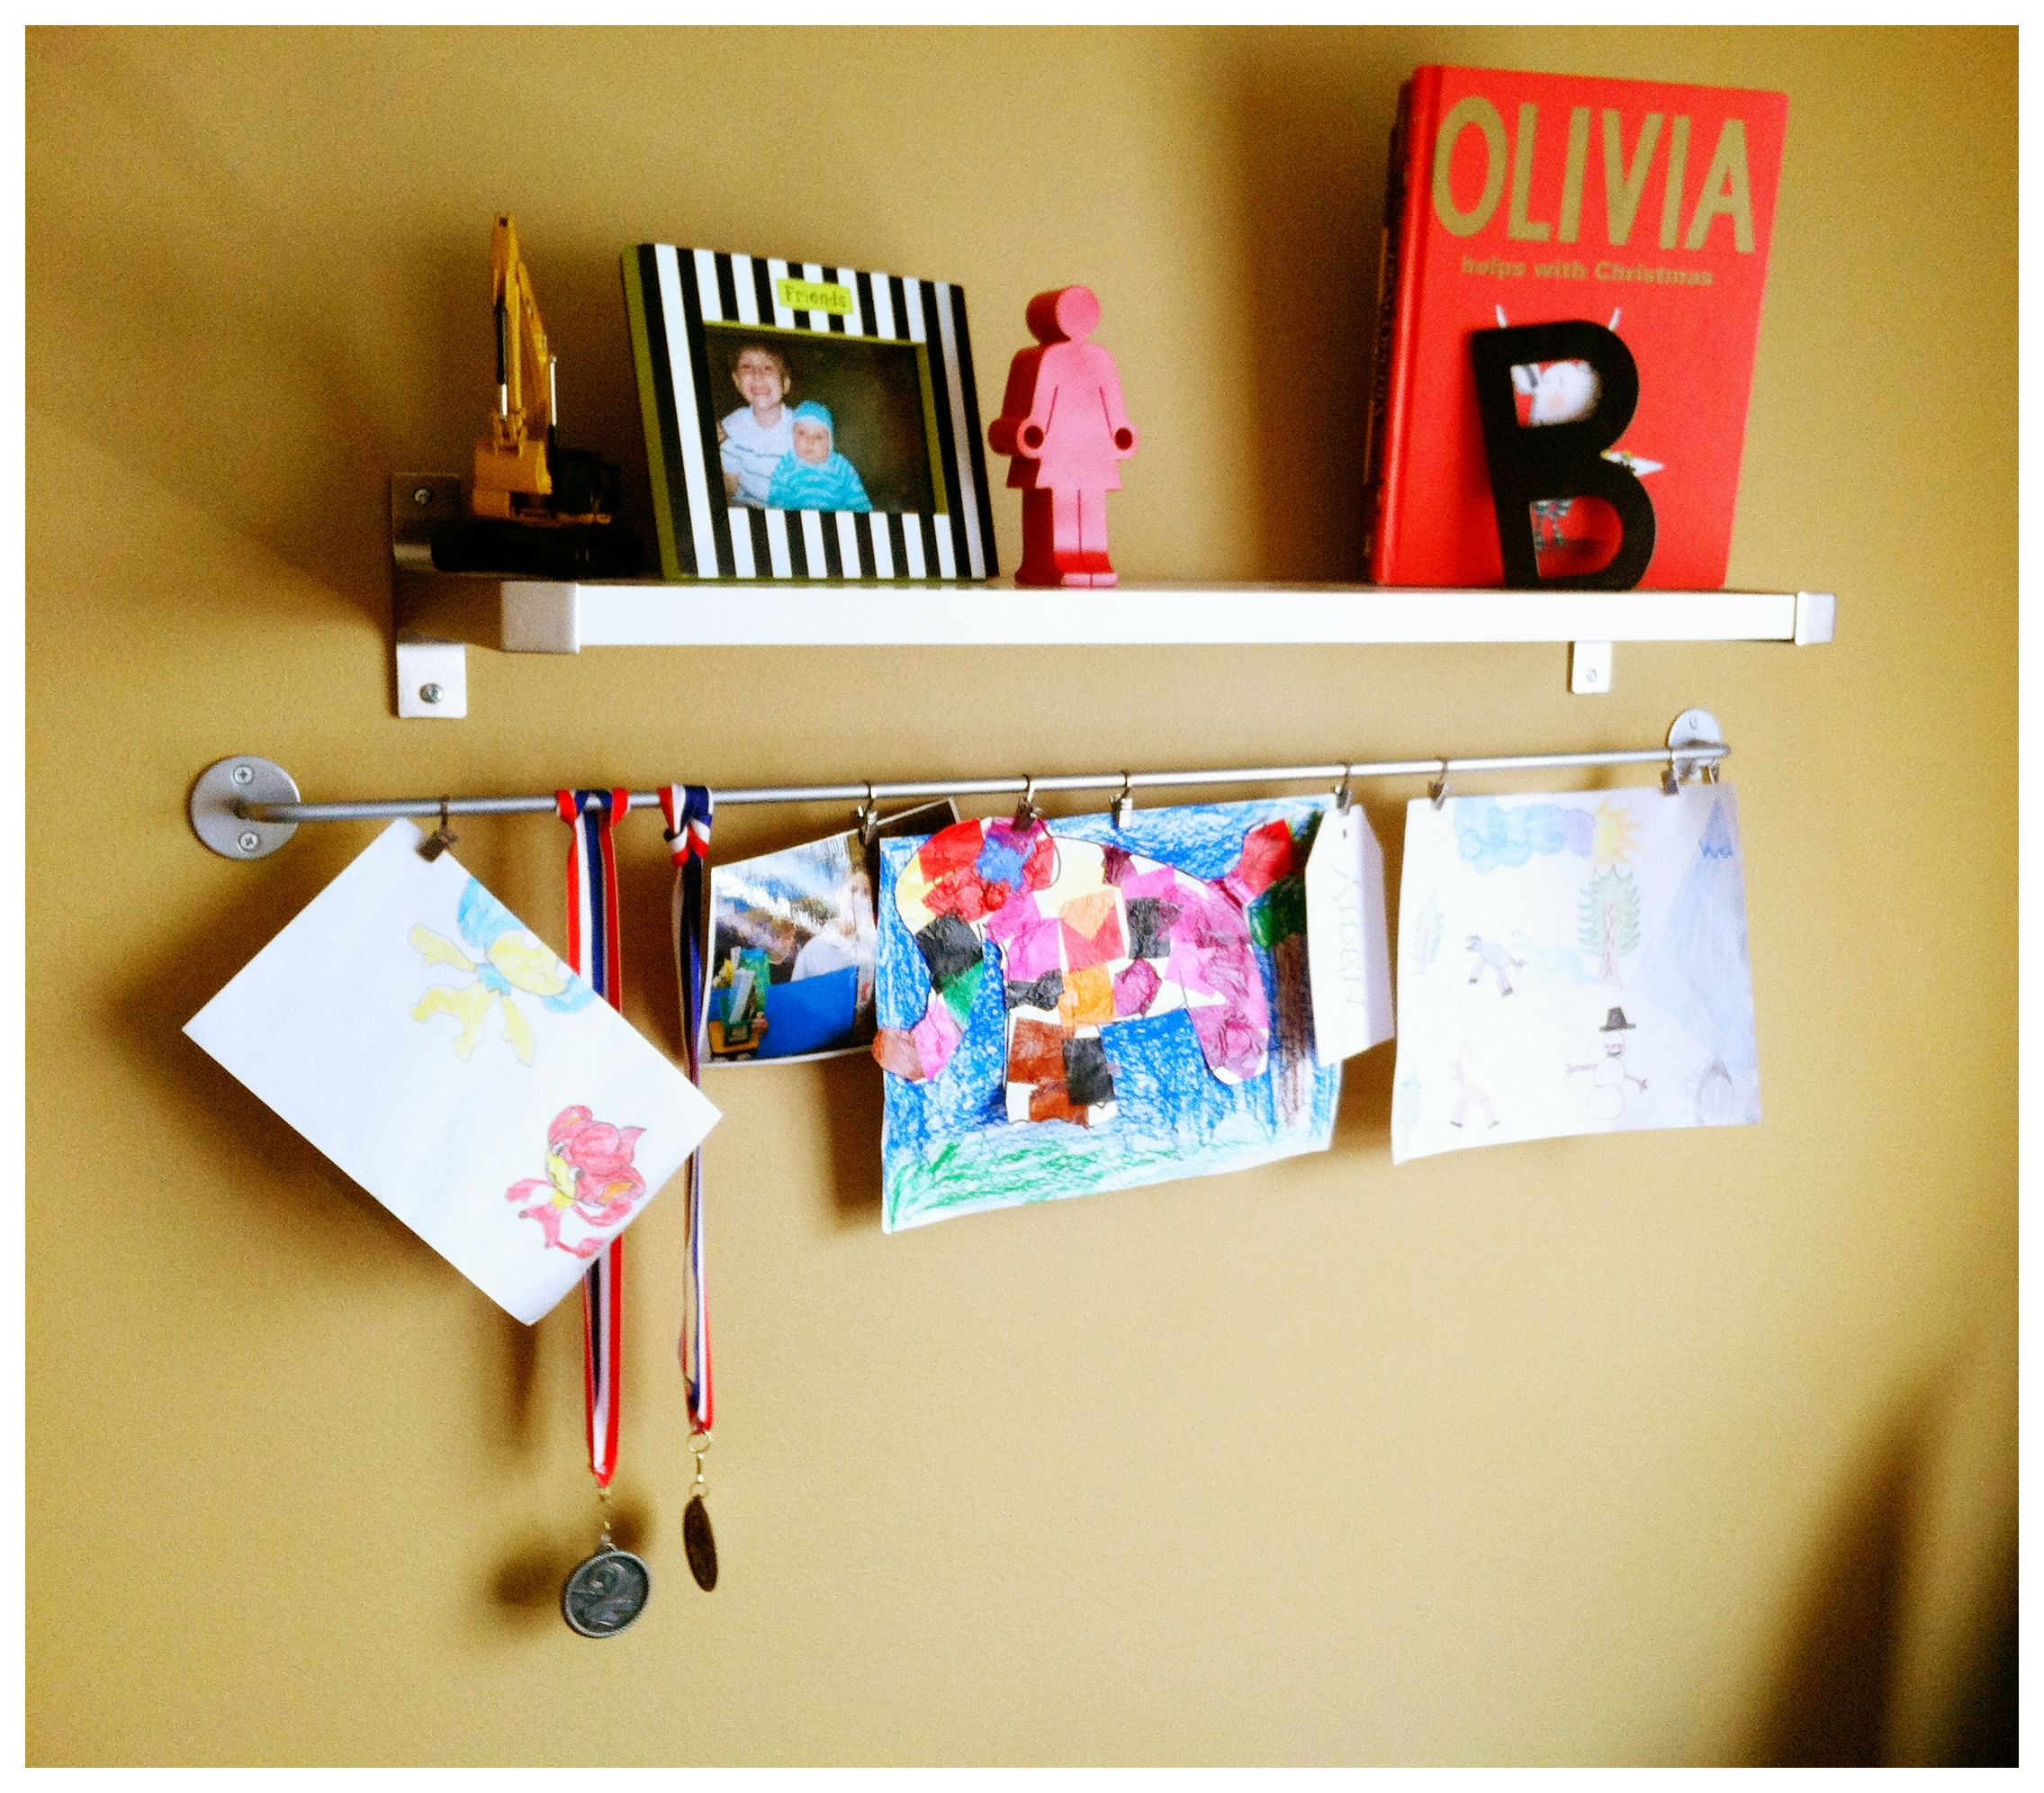 Ikea bookshelf and kitchen utensil shelf, used to hang kids artwork ...